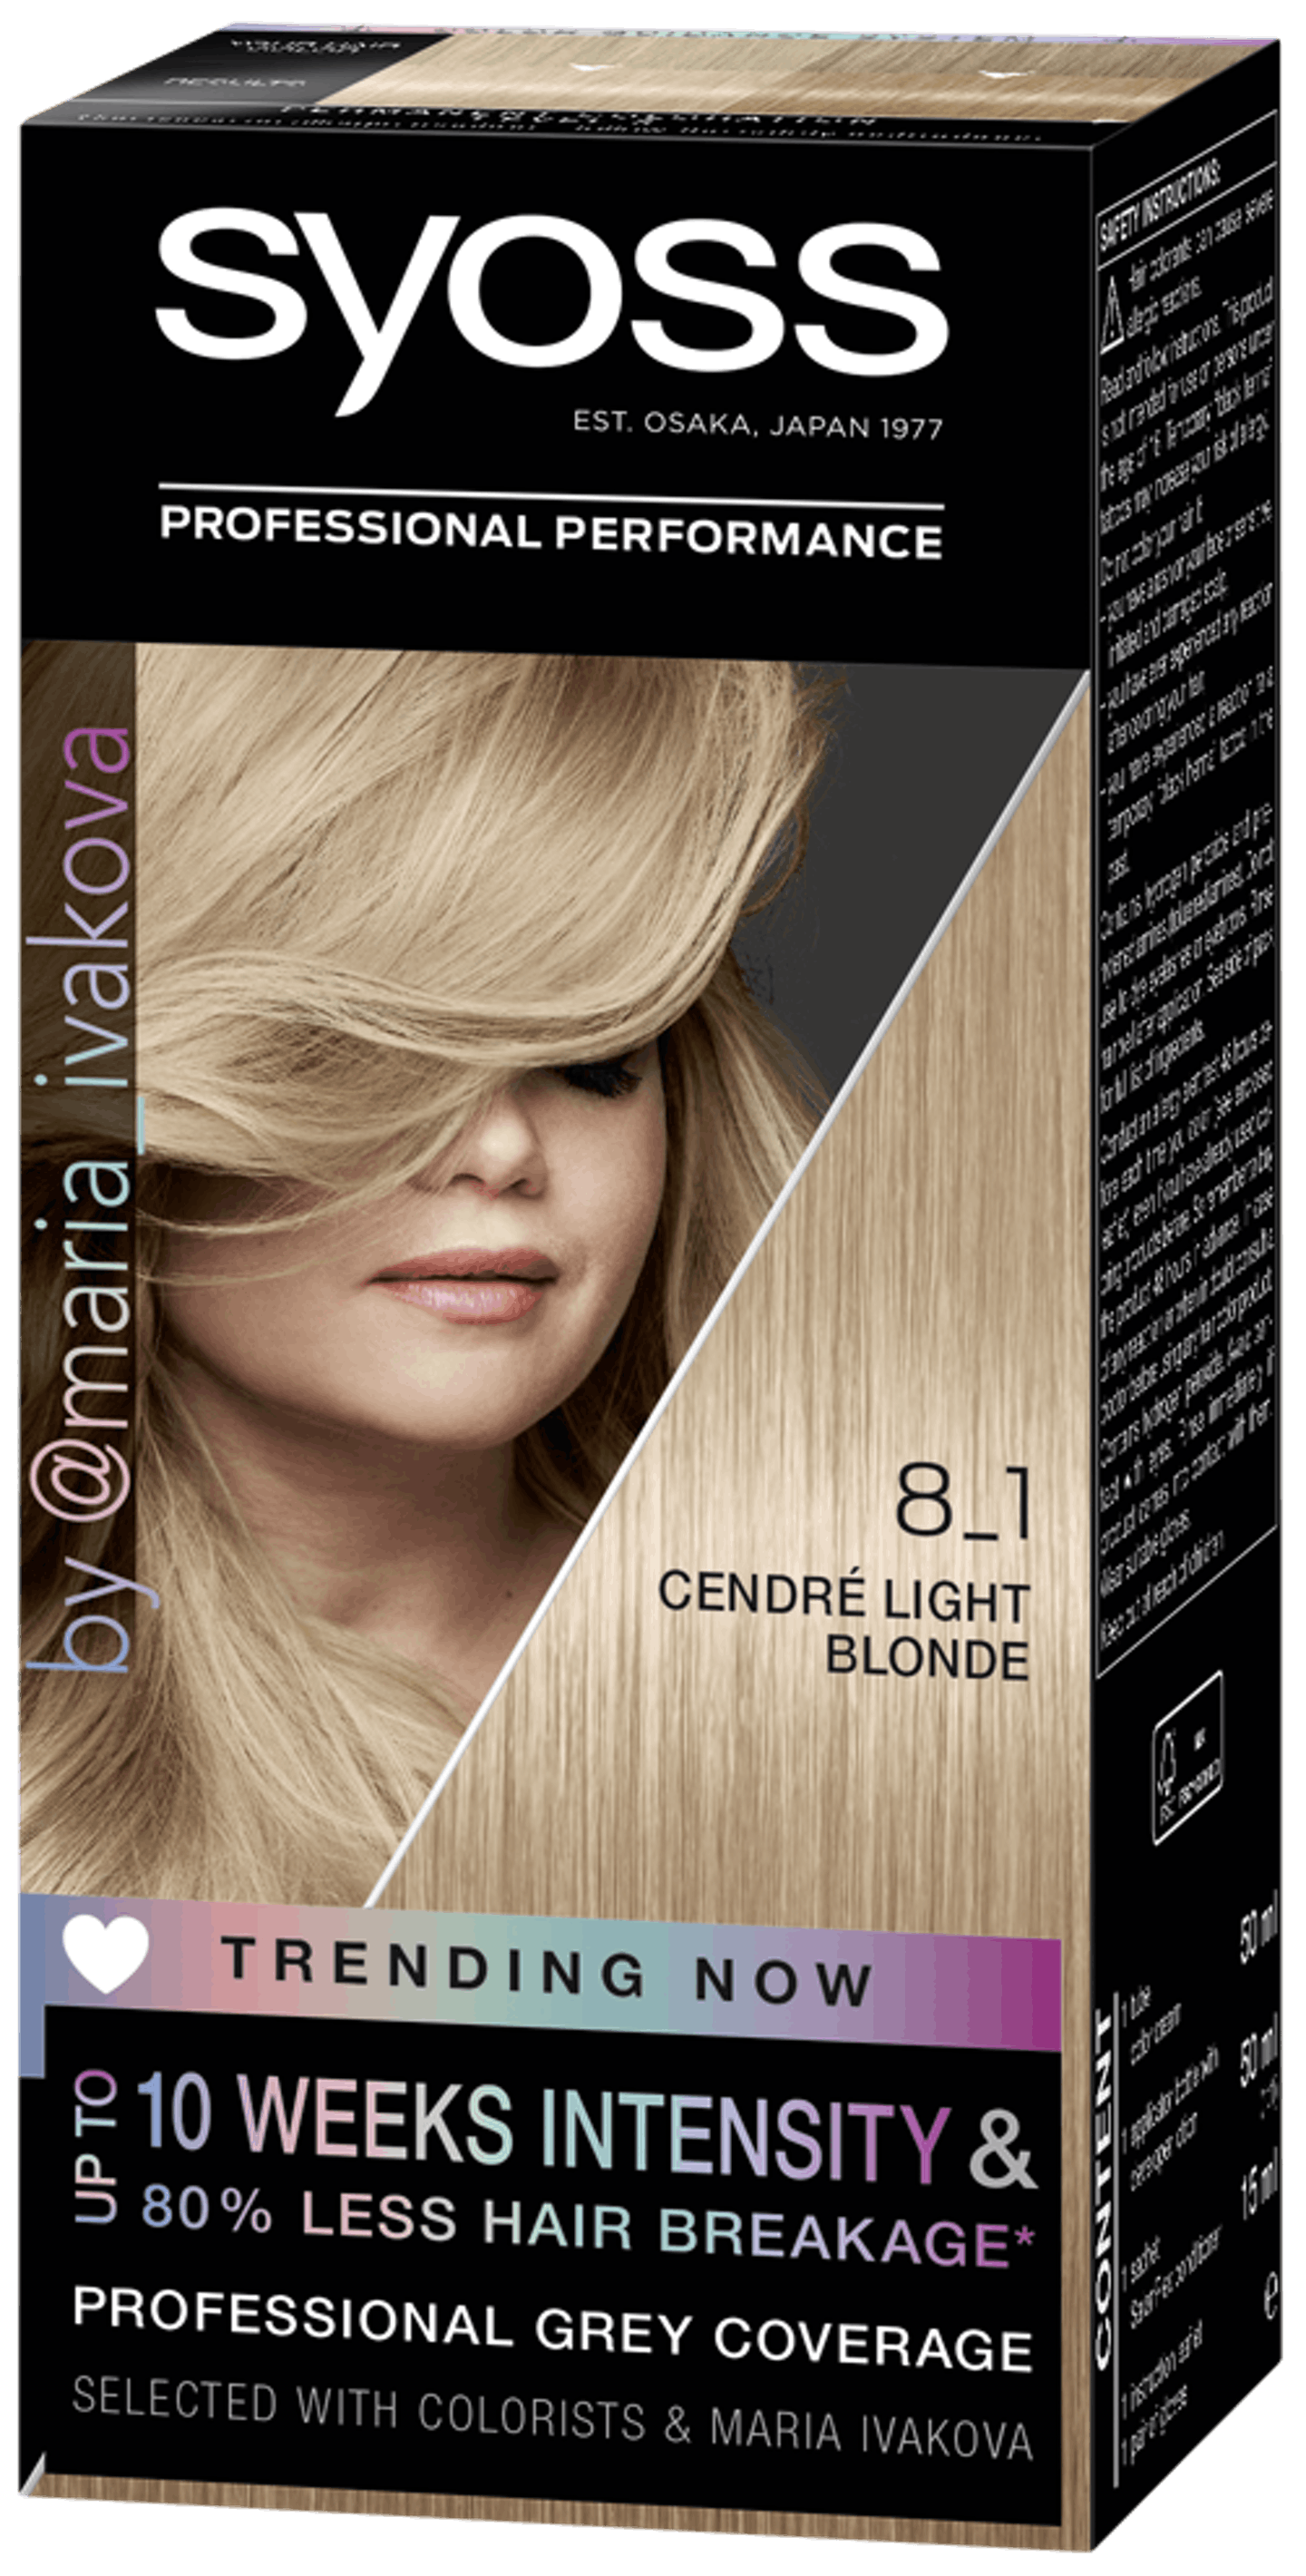 Syoss Permanent Coloration Trending Now 8_1 Cendré Light Blond - Permanent Hair Coloration